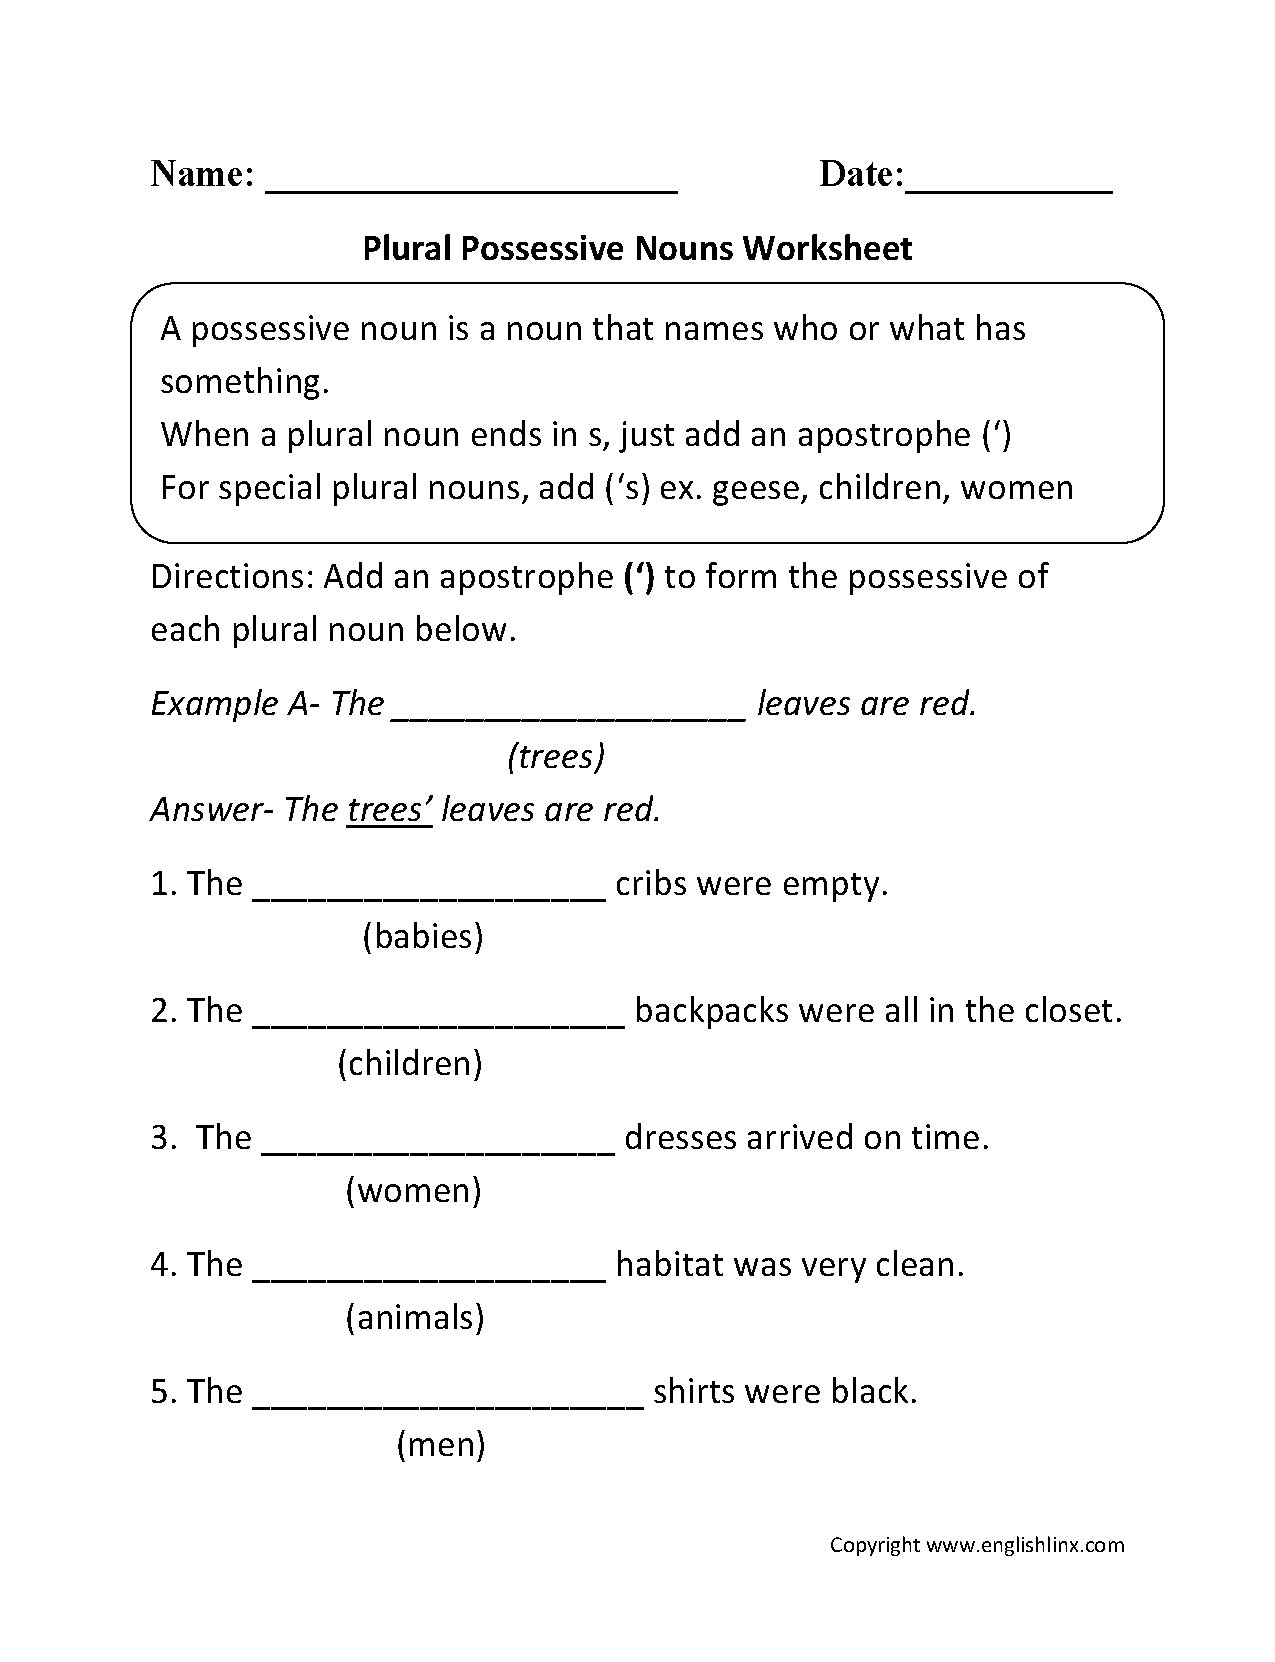 Aldiablosus  Ravishing Nouns Worksheets  Possessive Nouns Worksheets With Entrancing Possessive Nouns Worksheets With Delightful How To Manage Your Money Worksheets Also Solving Percent Problems Worksheet In Addition Protons Neutrons Electrons Worksheet And Arcs And Angles Worksheet As Well As Addition Worksheets For Rd Grade Additionally Nd Grade Math Word Problems Worksheets From Englishlinxcom With Aldiablosus  Entrancing Nouns Worksheets  Possessive Nouns Worksheets With Delightful Possessive Nouns Worksheets And Ravishing How To Manage Your Money Worksheets Also Solving Percent Problems Worksheet In Addition Protons Neutrons Electrons Worksheet From Englishlinxcom